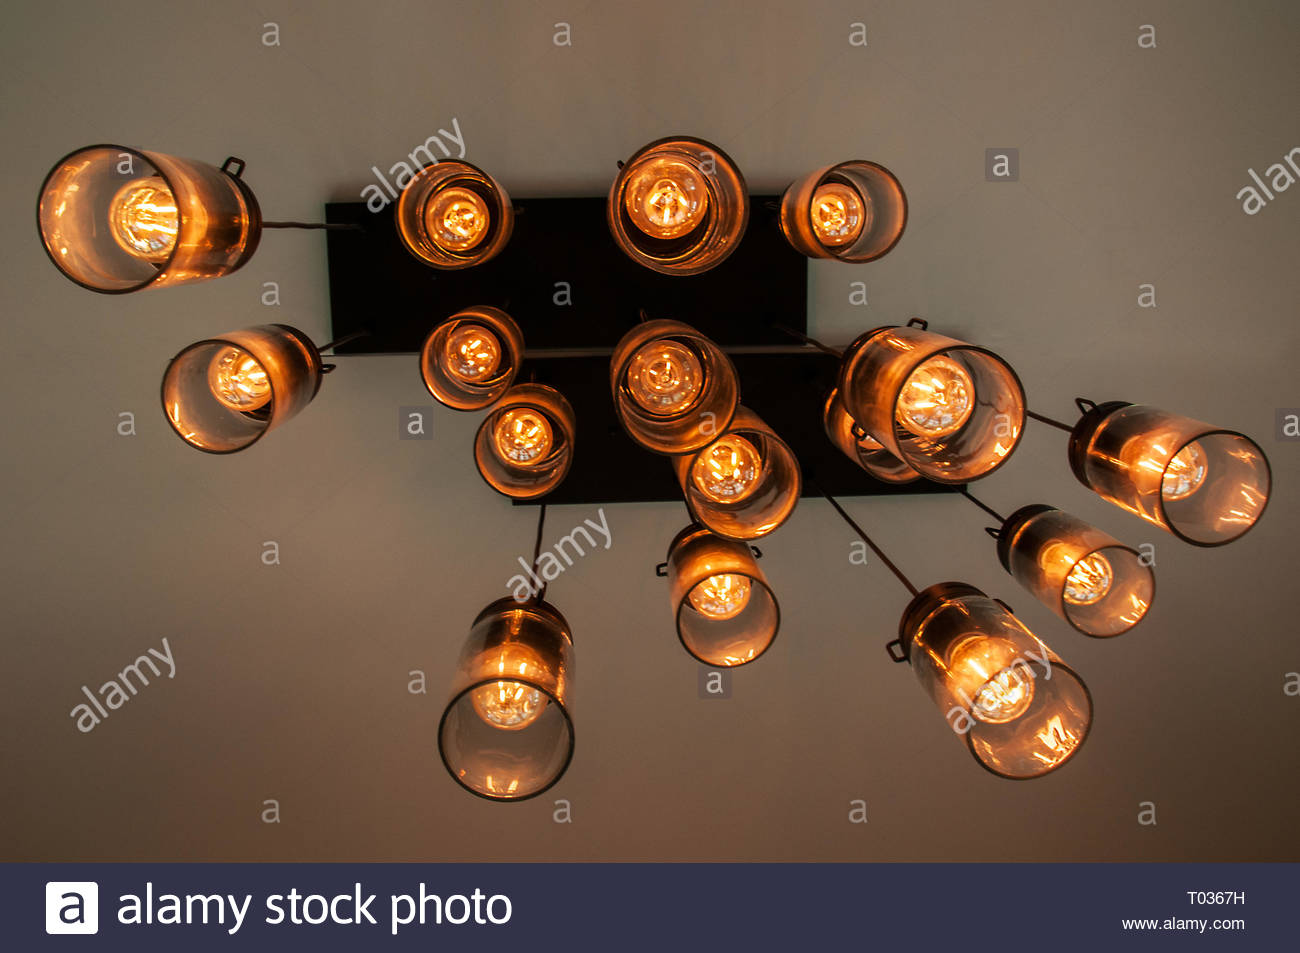 Ceiling lights hanging in abstract view Ontario Canada - Stock Image